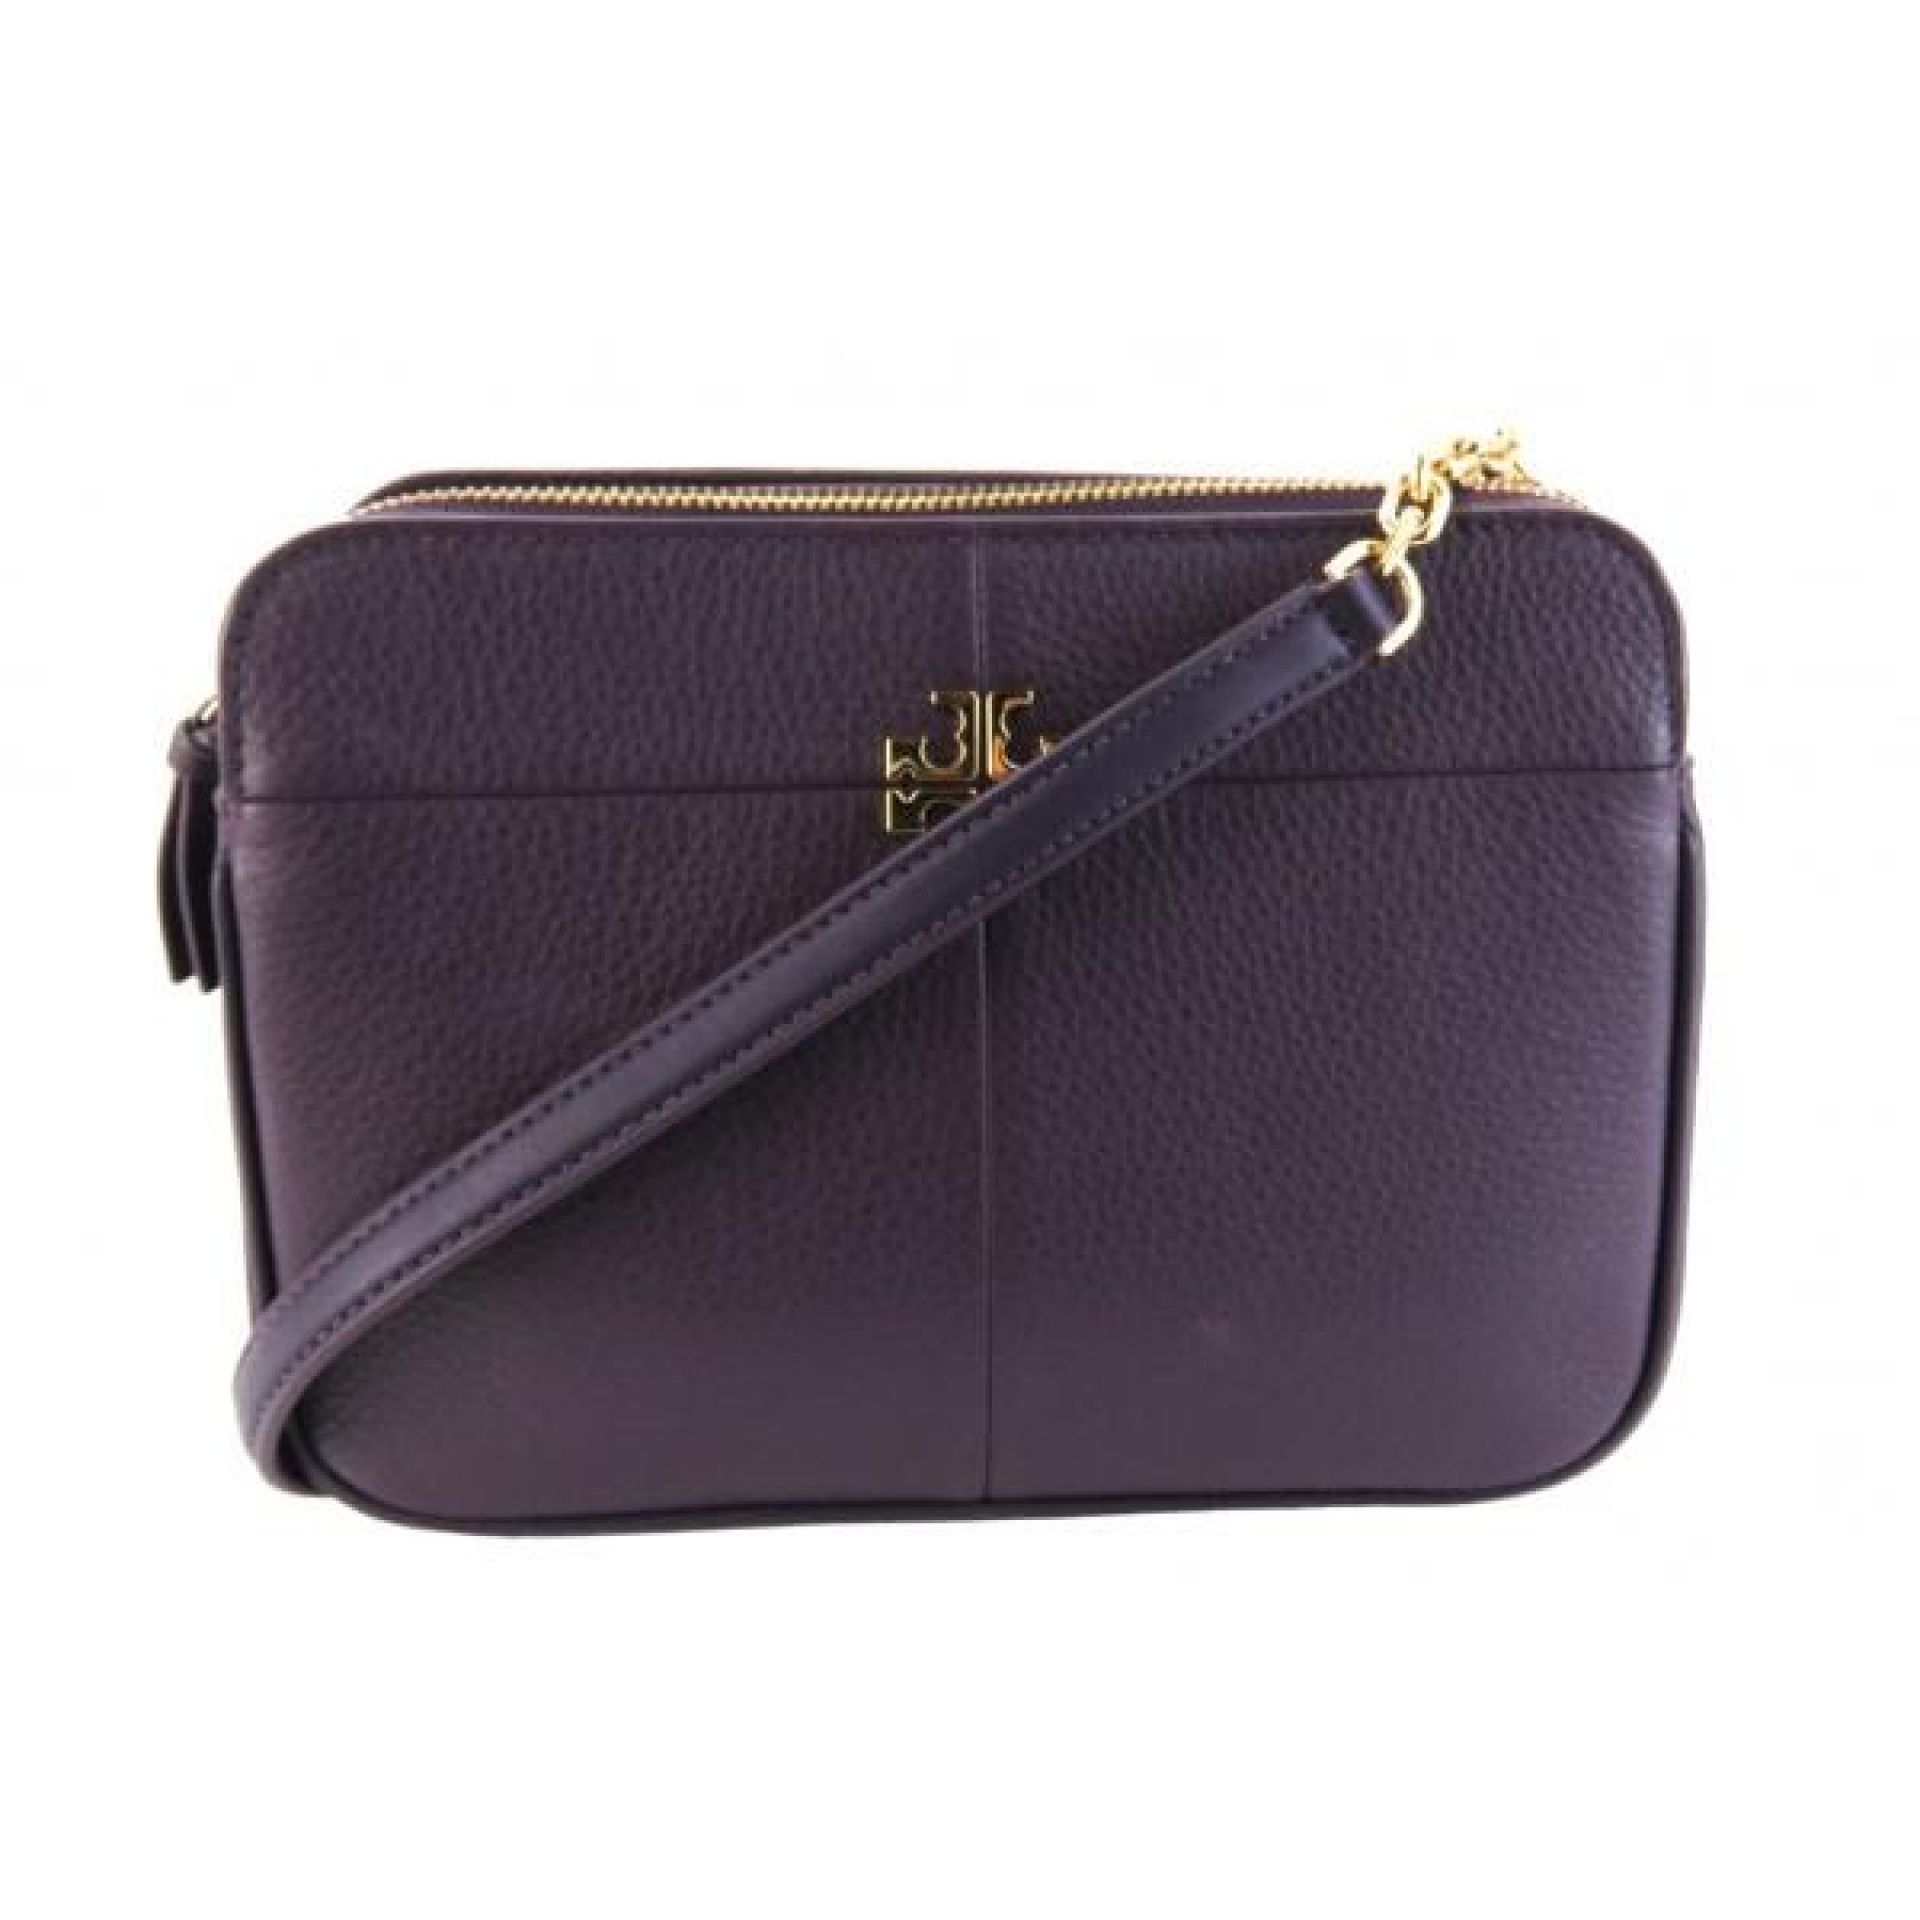 Tory Burch Purple Pebbled Leather Ivy Crossbody Bag